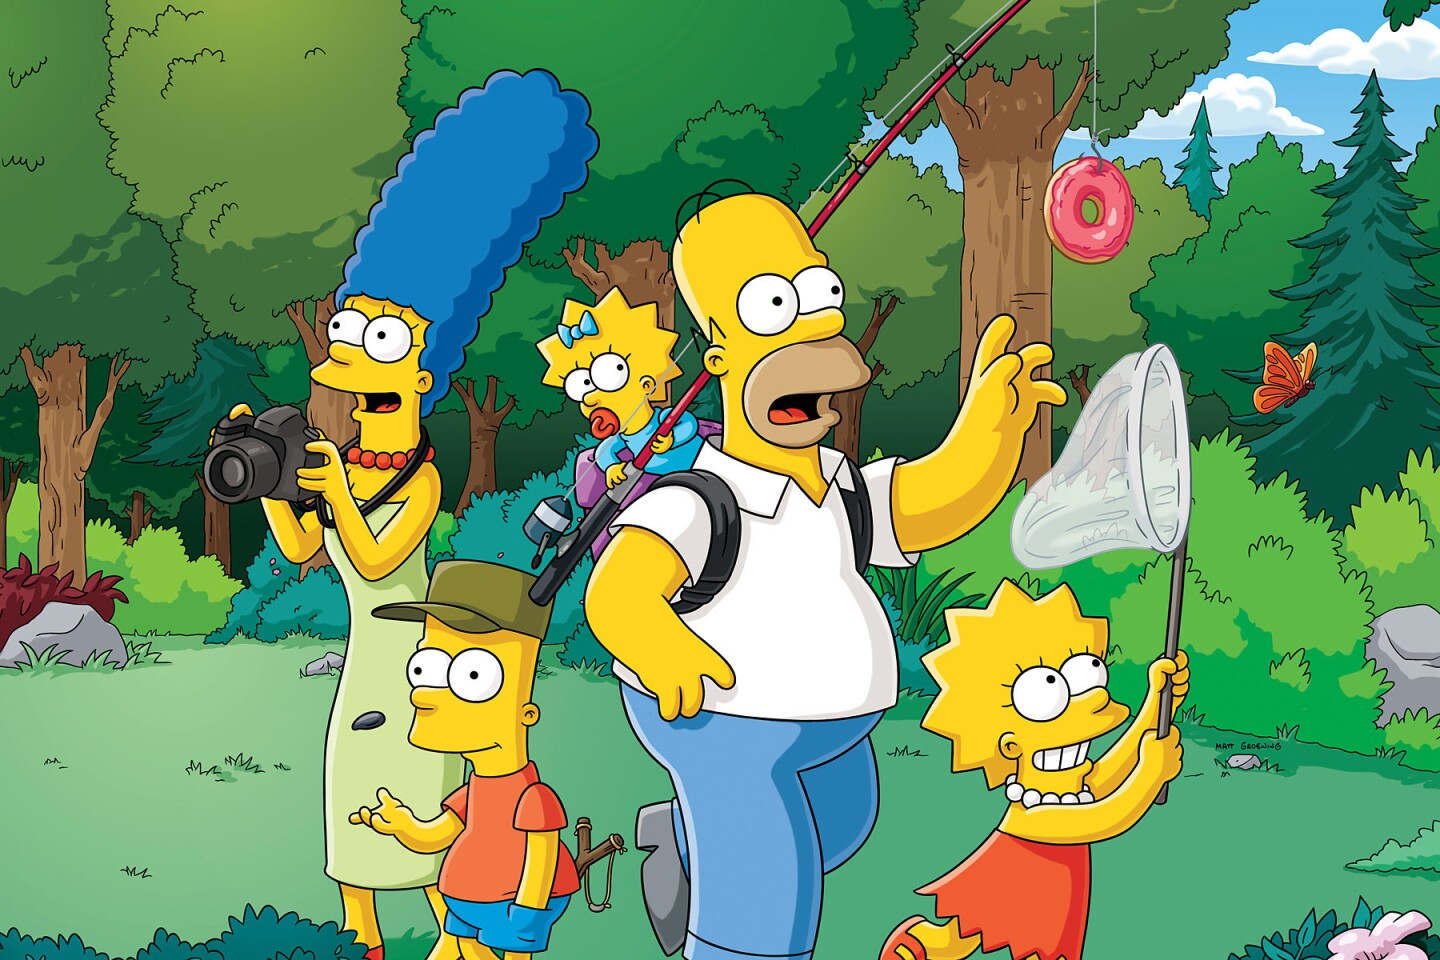 """The Simpsons"" is America's longest-running scripted prime-time TV series, longest-running sitcom and longest-running animated series. Here's a look back at some of Springfield's most memorable moments in the show's first 25 seasons."